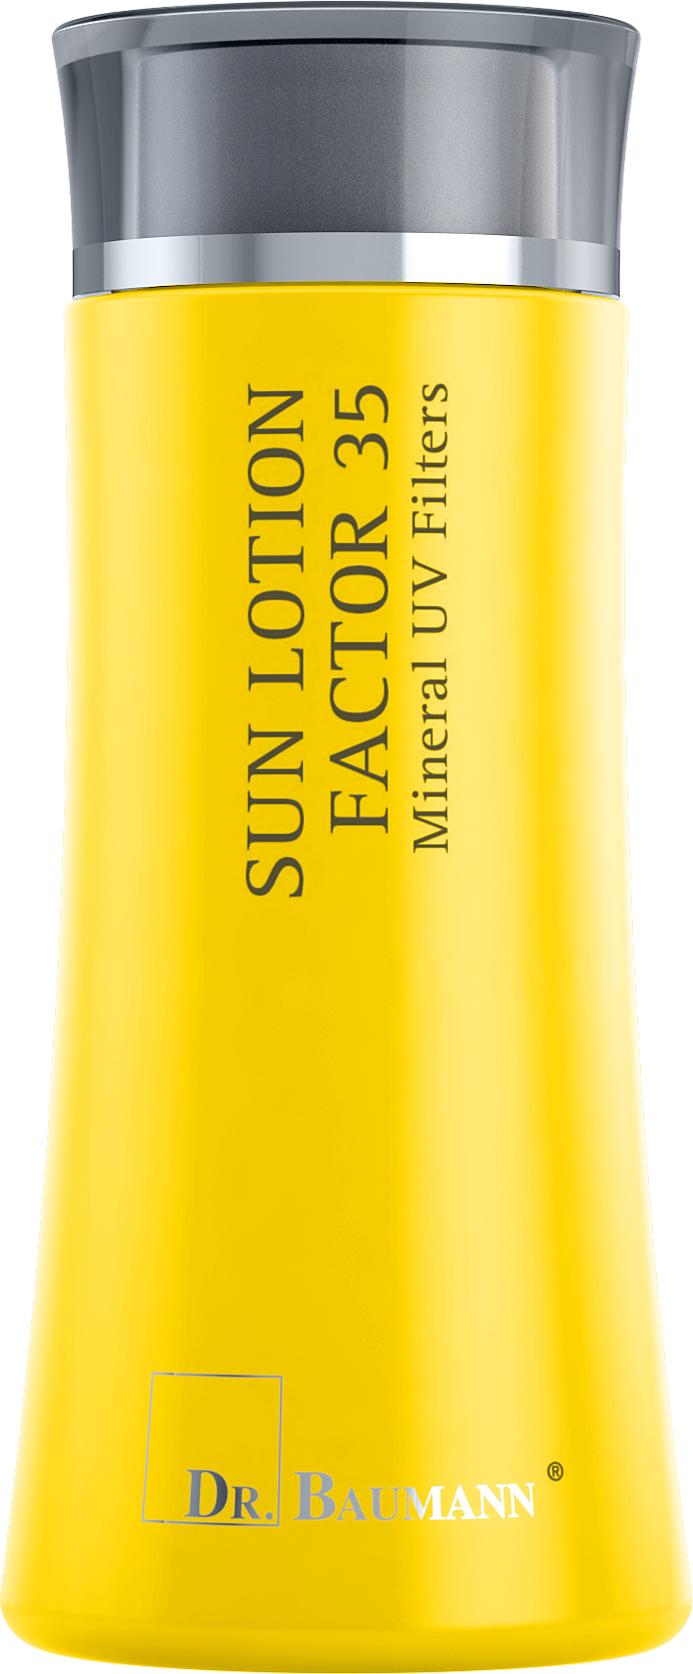 Sun Lotion Factor 35 Mineral UV Filters